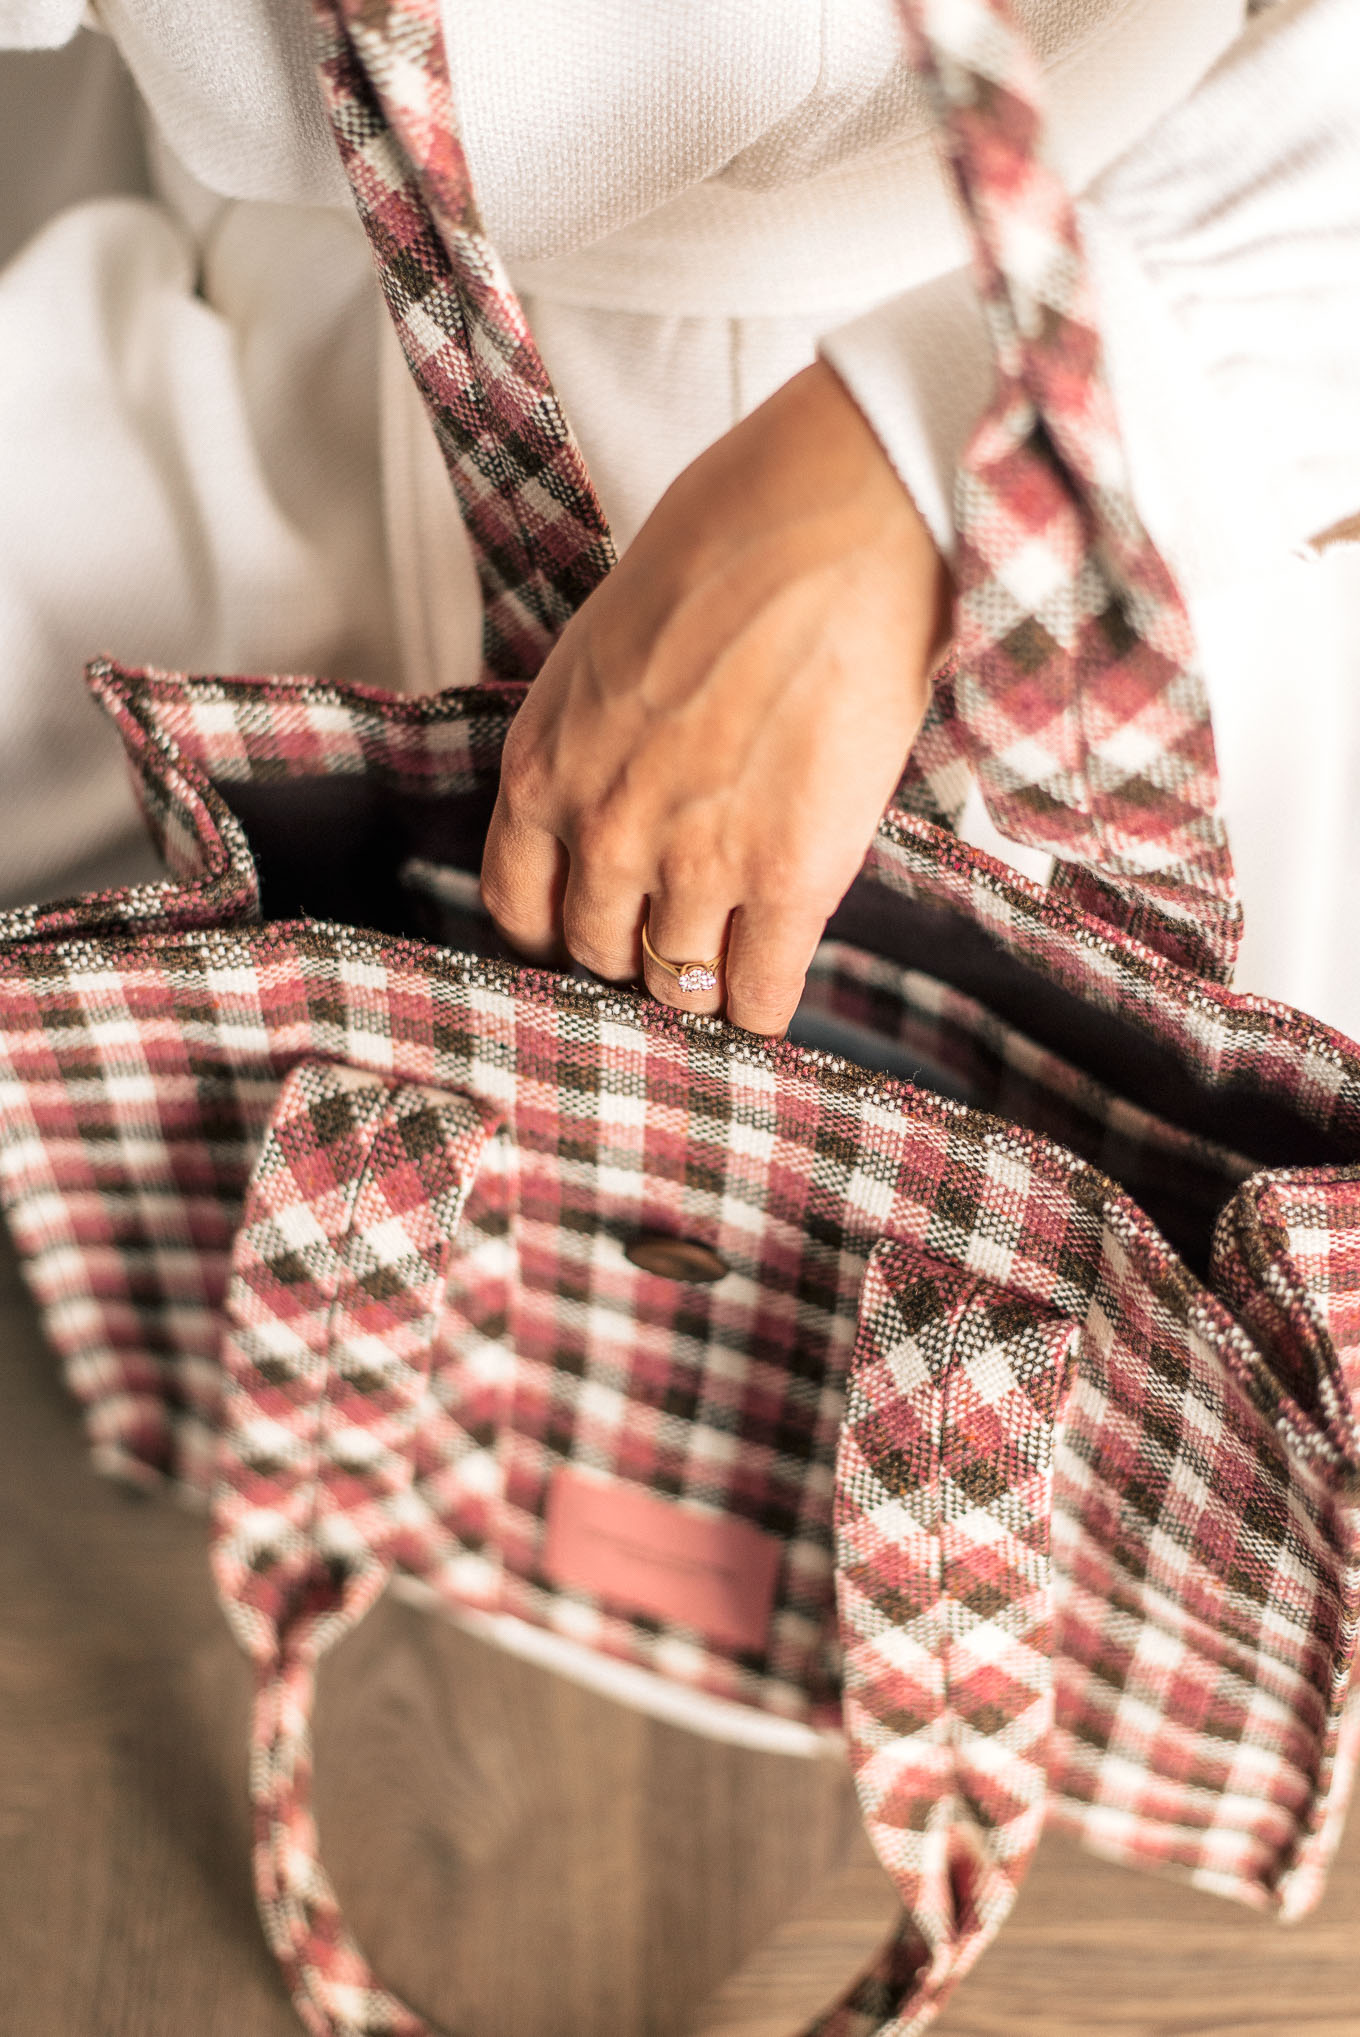 details of Handbag crafted by Denina Martin Collection